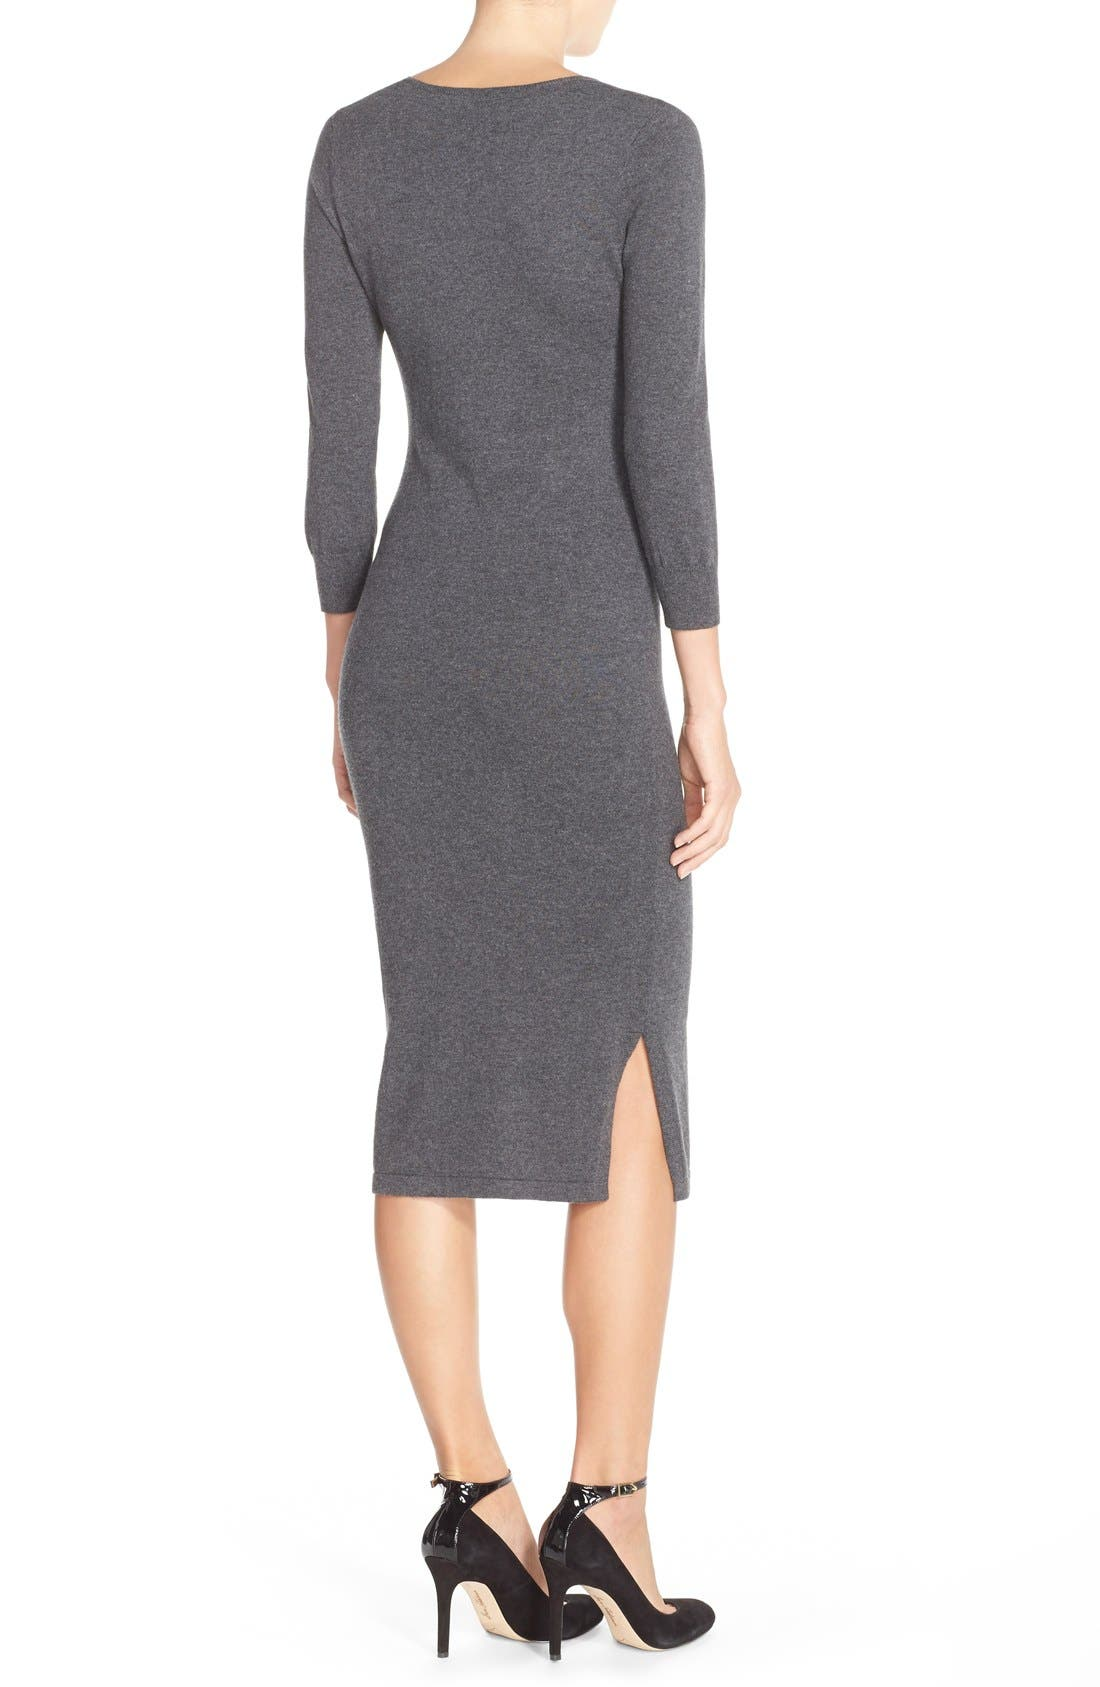 'Bambino' Knit Sweater Dress,                             Alternate thumbnail 5, color,                             023